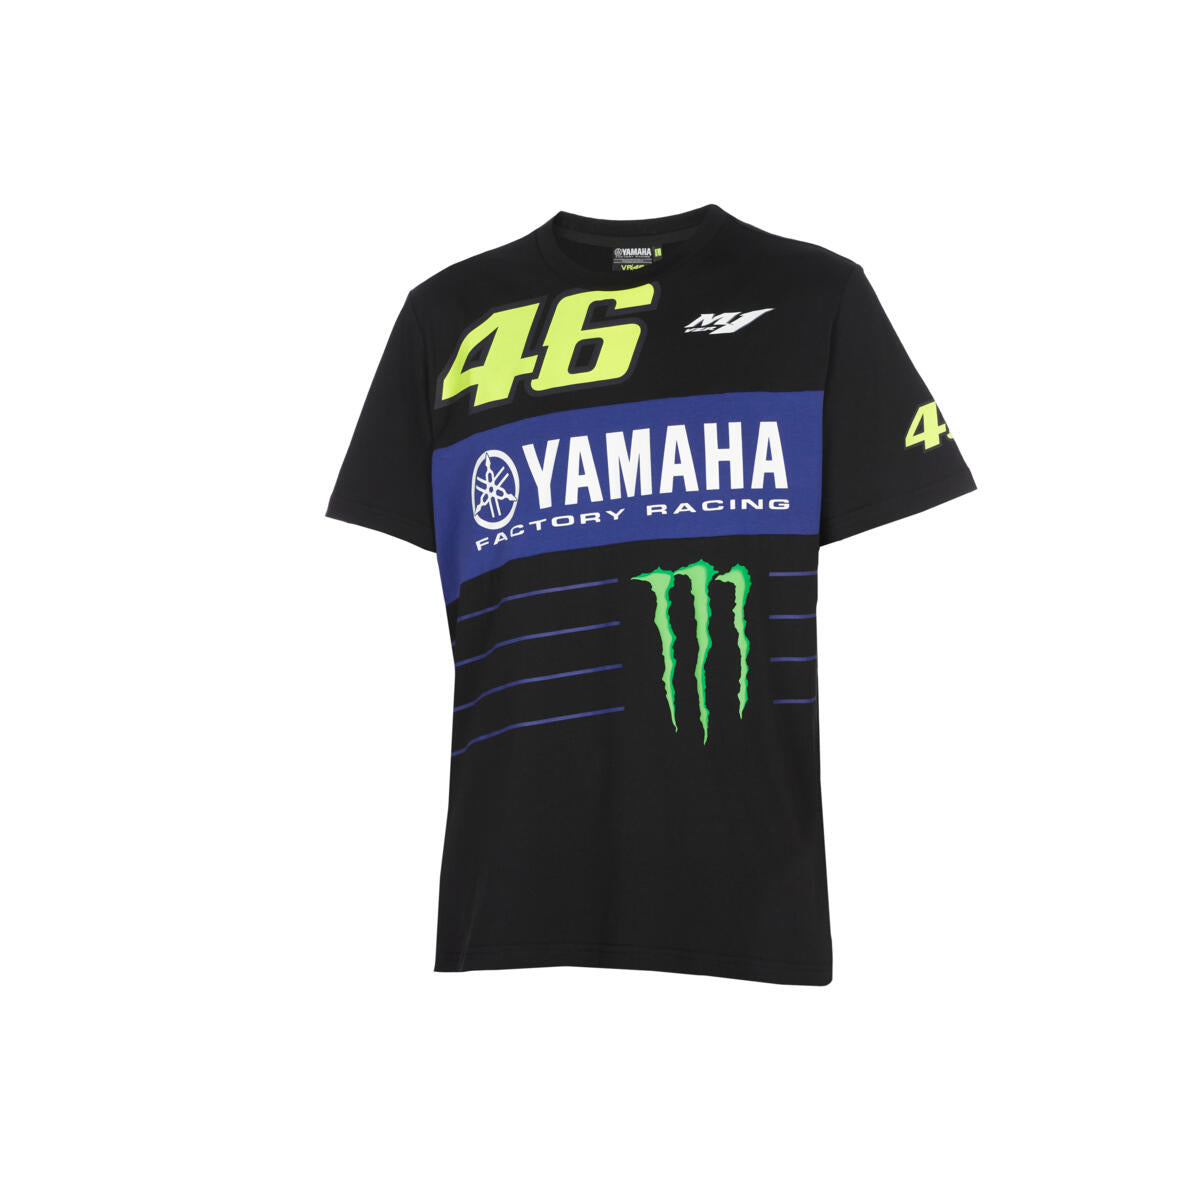 Yamaha VR46 Men's Powerline T-shirt